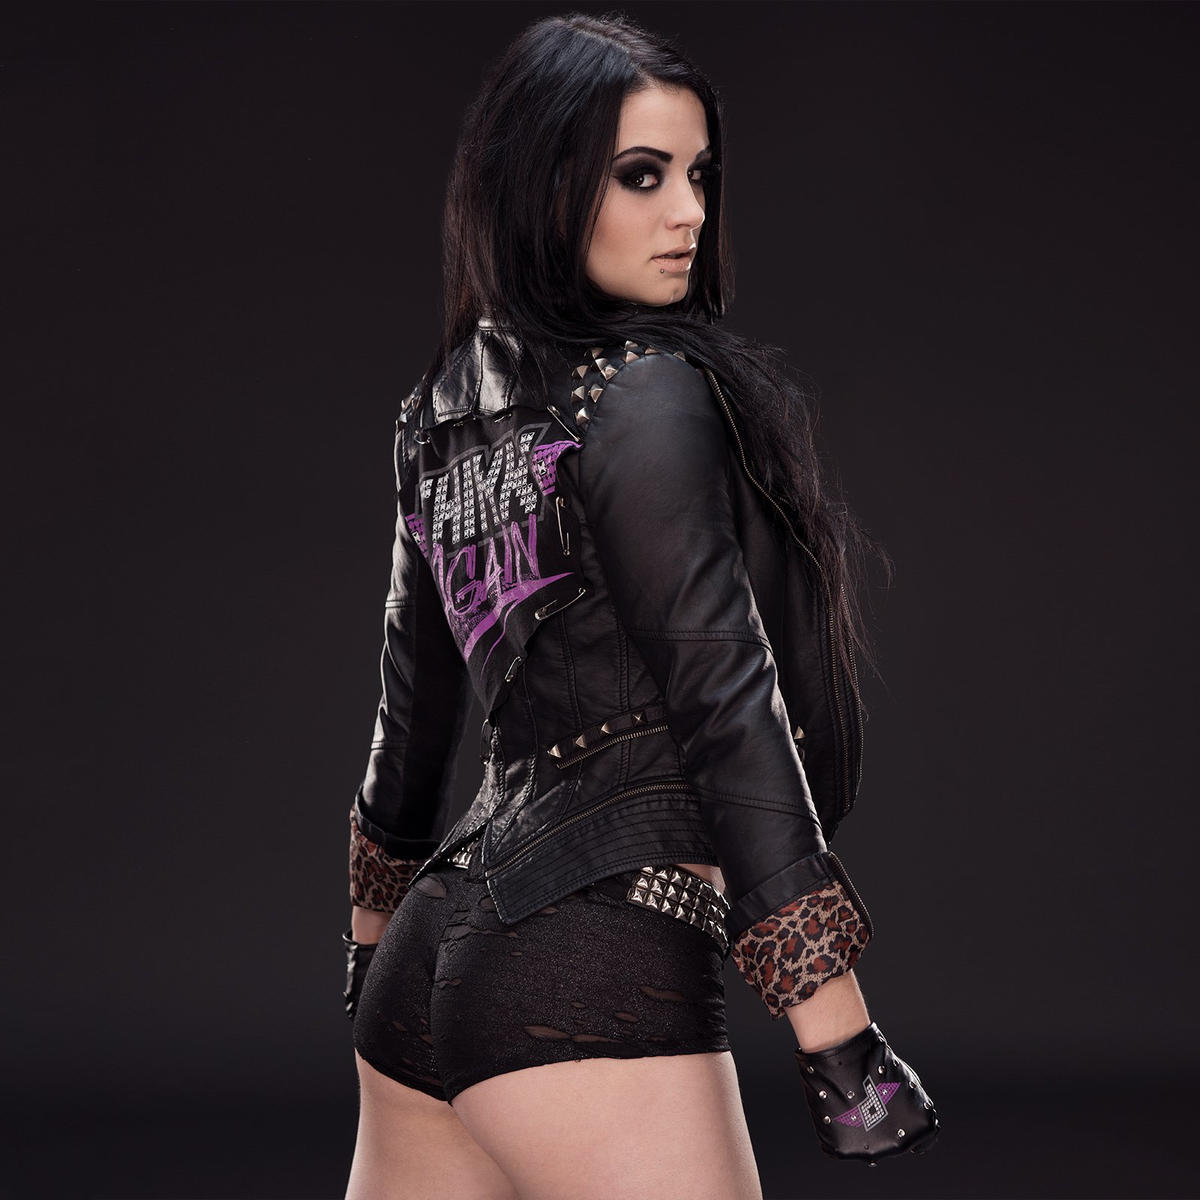 Photos Paige WWE ke nudes (93 photo), Tits, Bikini, Feet, butt 2006